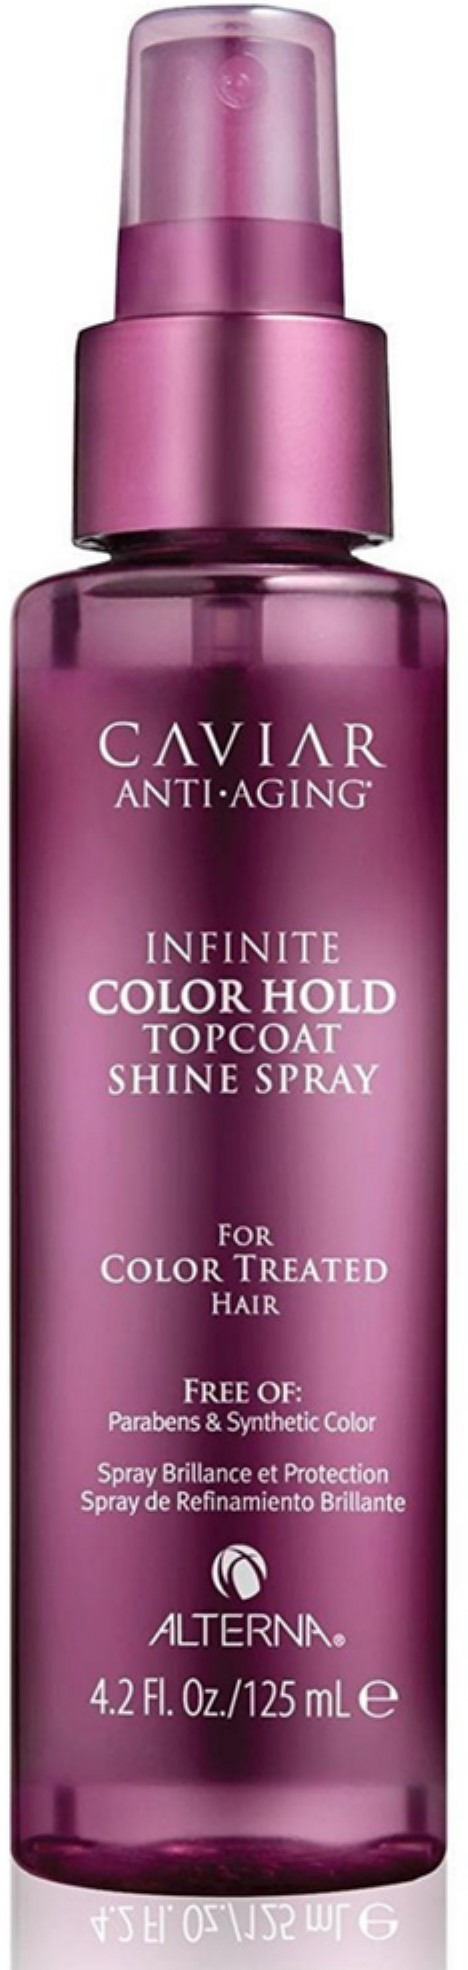 Alterna Caviar Infinite Color Hold Topcoat Shine Spray 125 ml